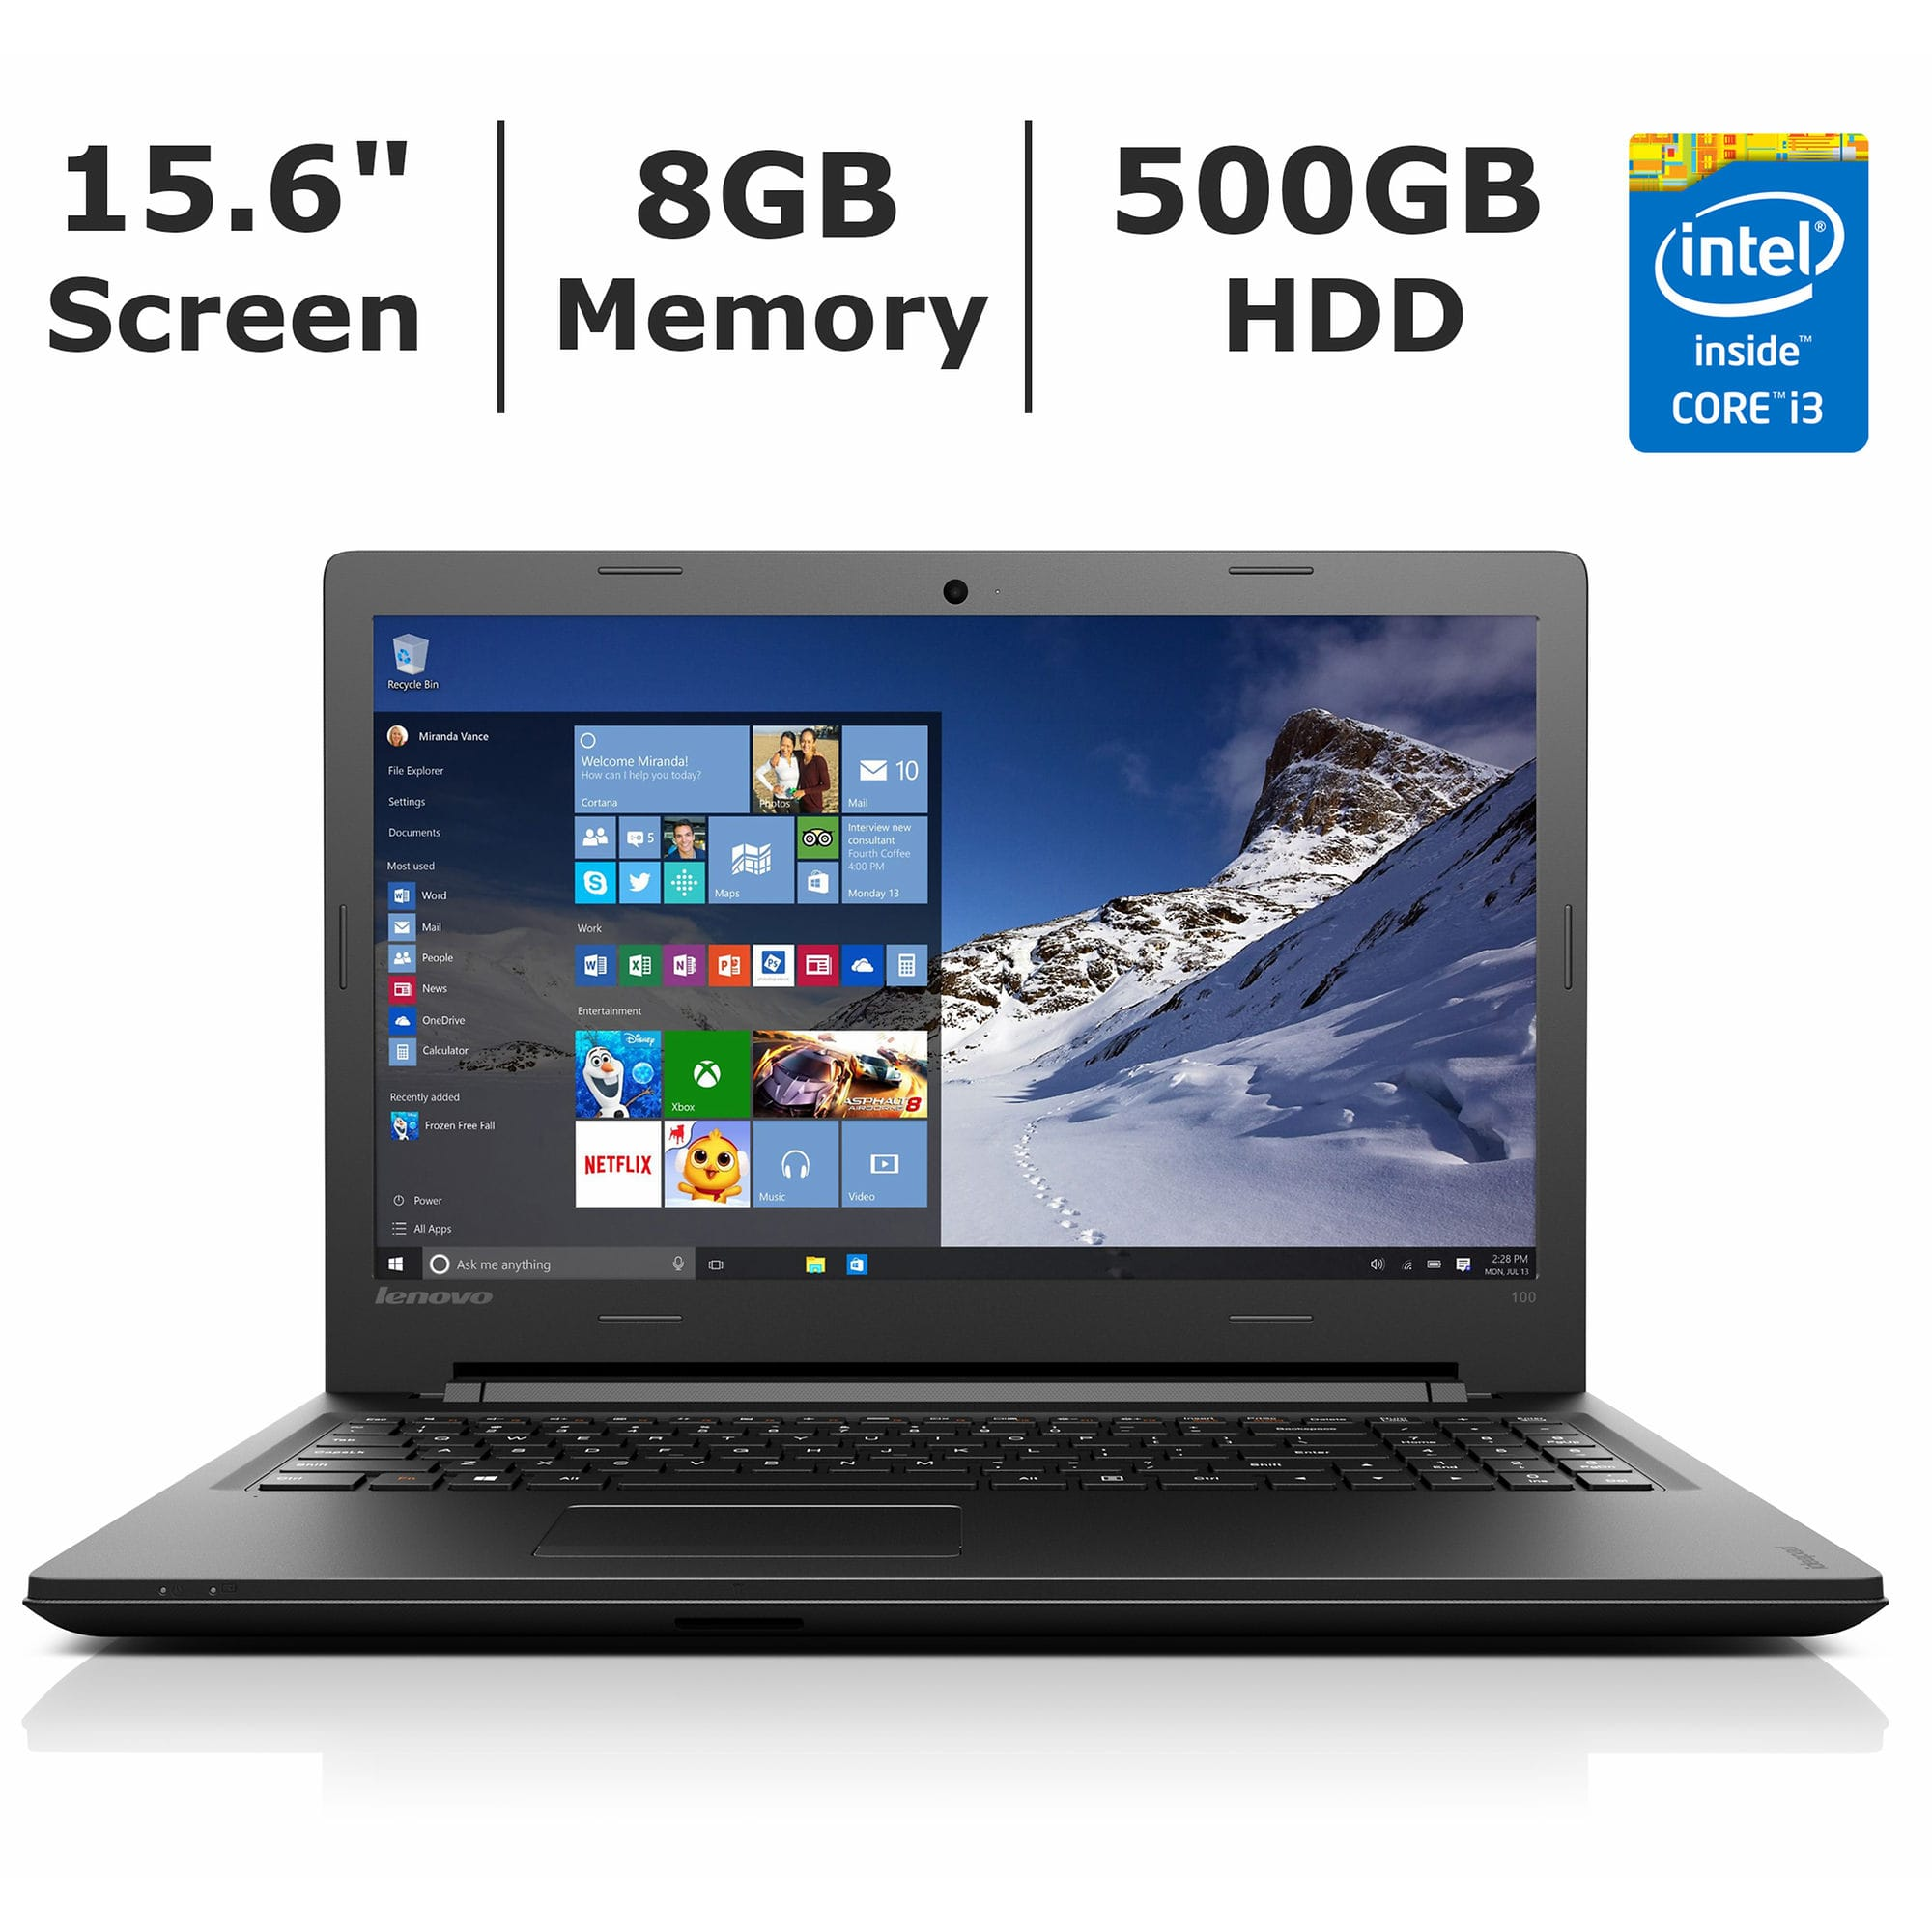 "Lenovo Ideapad 100 15.6"" 768P, Core i3-5020U, 8GB DDR3, 500GB HDD, DVDRW @ $300 with F/S at Bj's Wholesale"